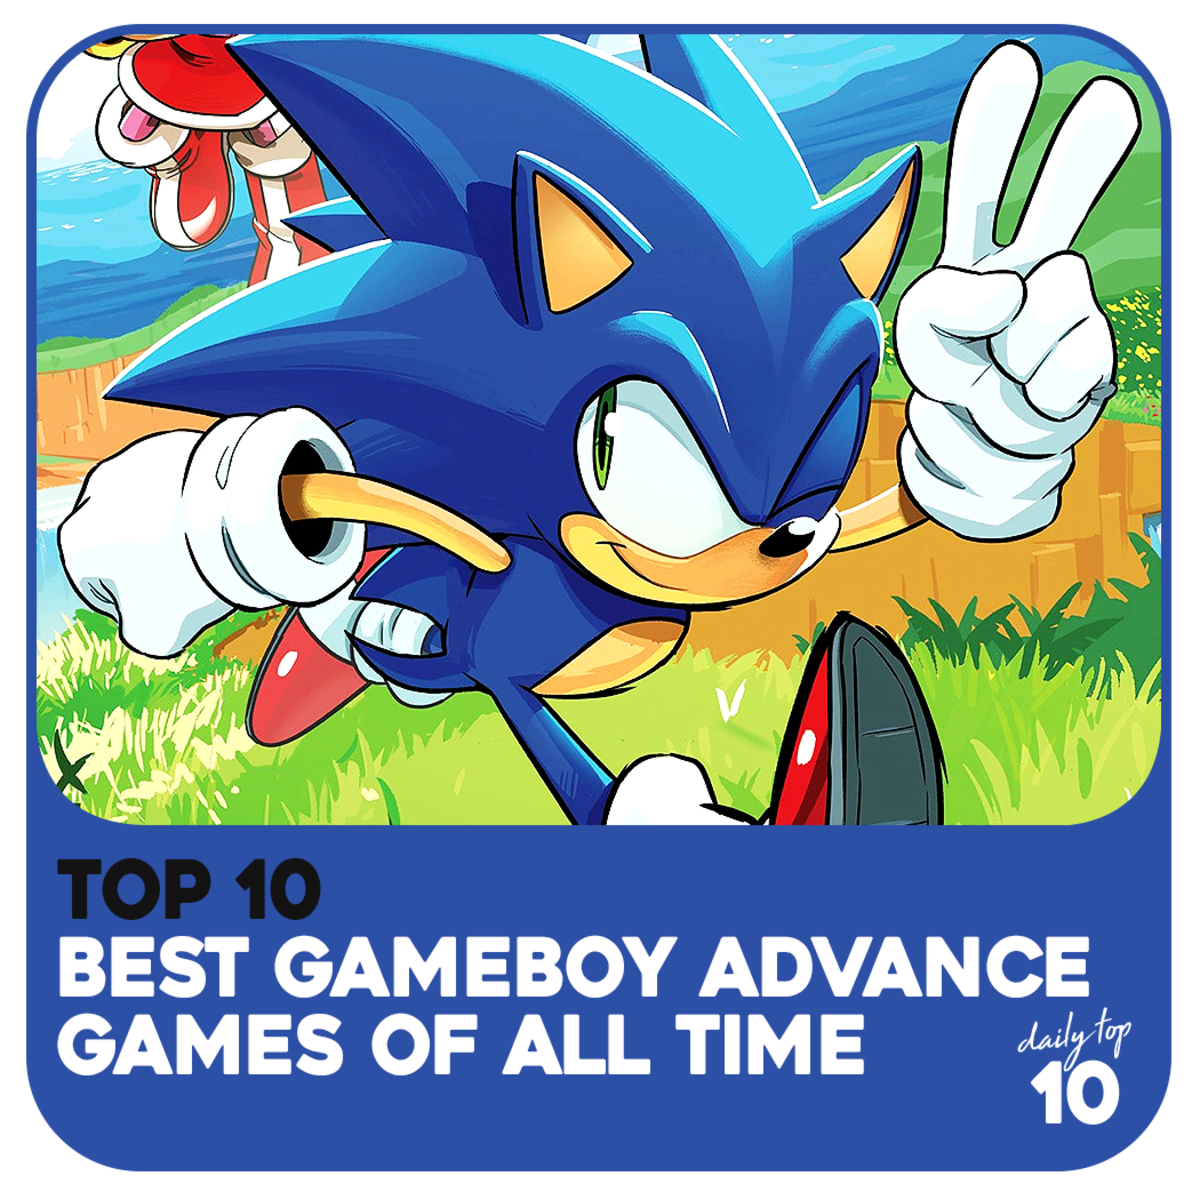 top-10-best-gameboy-advance-games-of-all-time